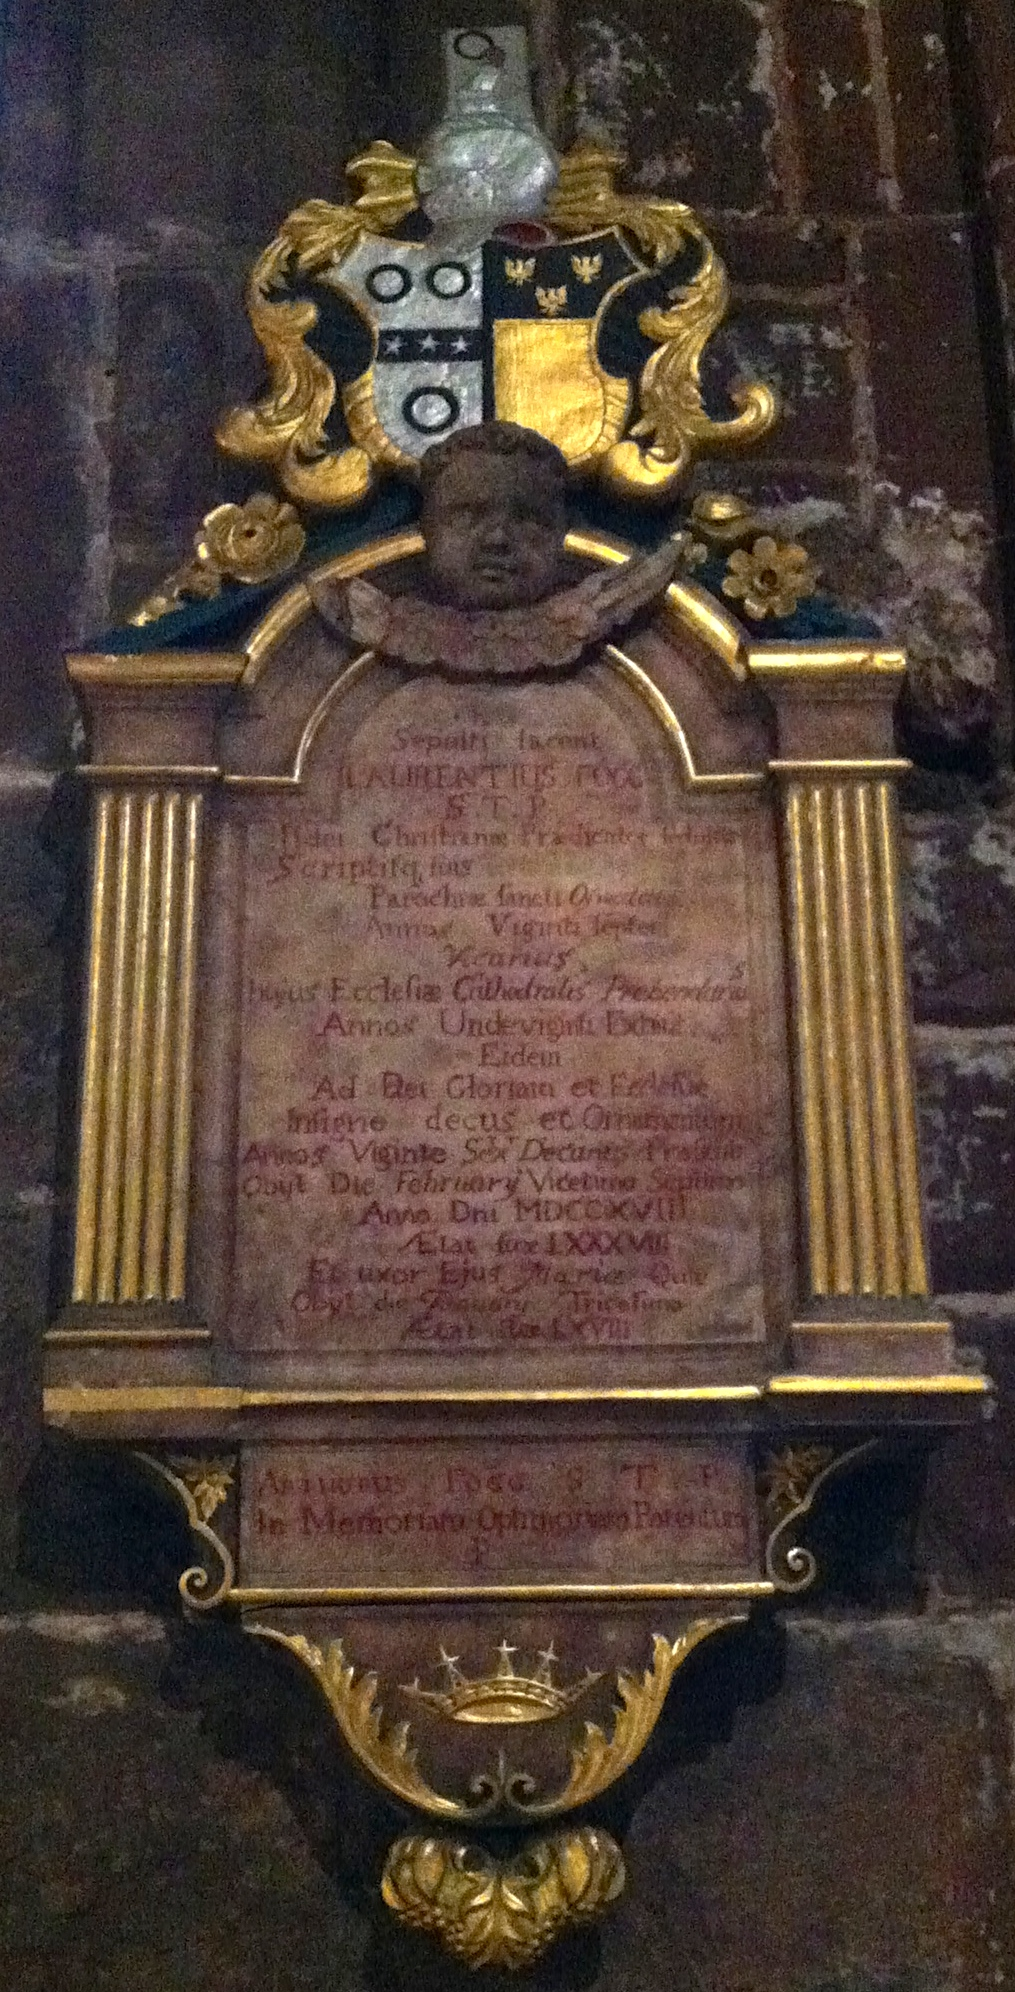 Memorial to Laurence Fogg in [[Chester Cathedral